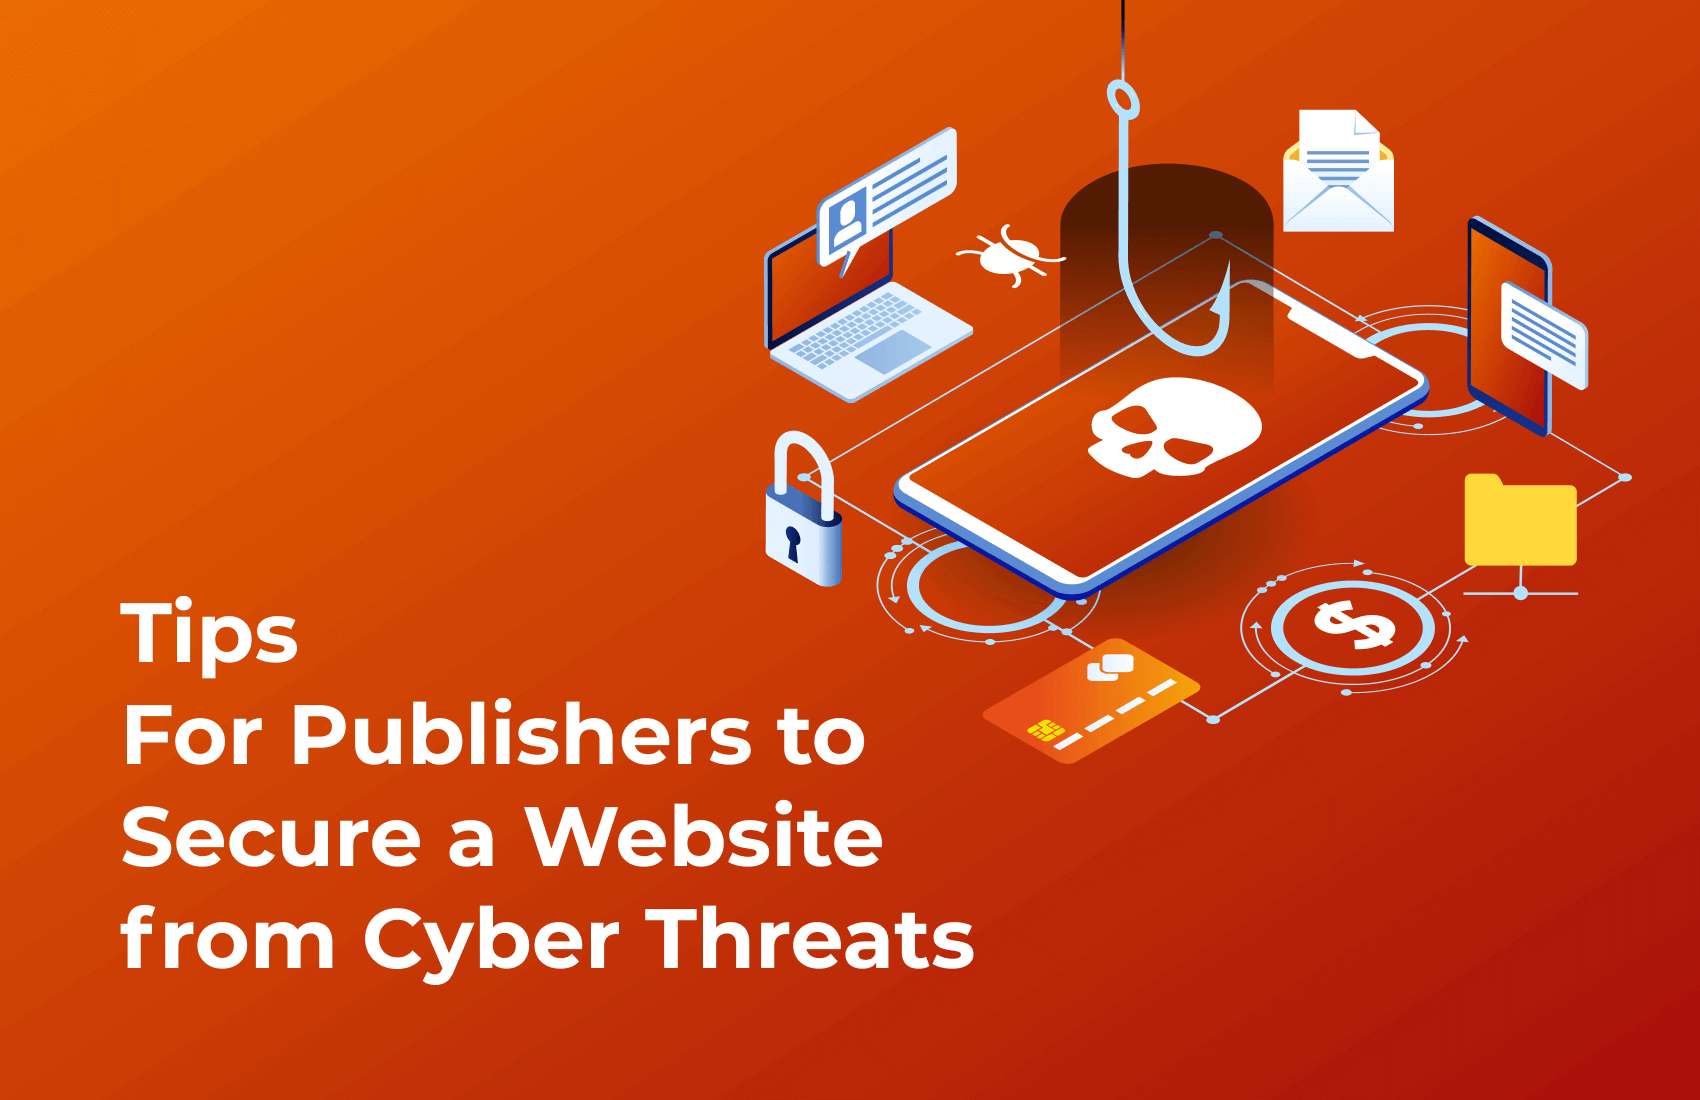 Tips to secure your website from cyber threats